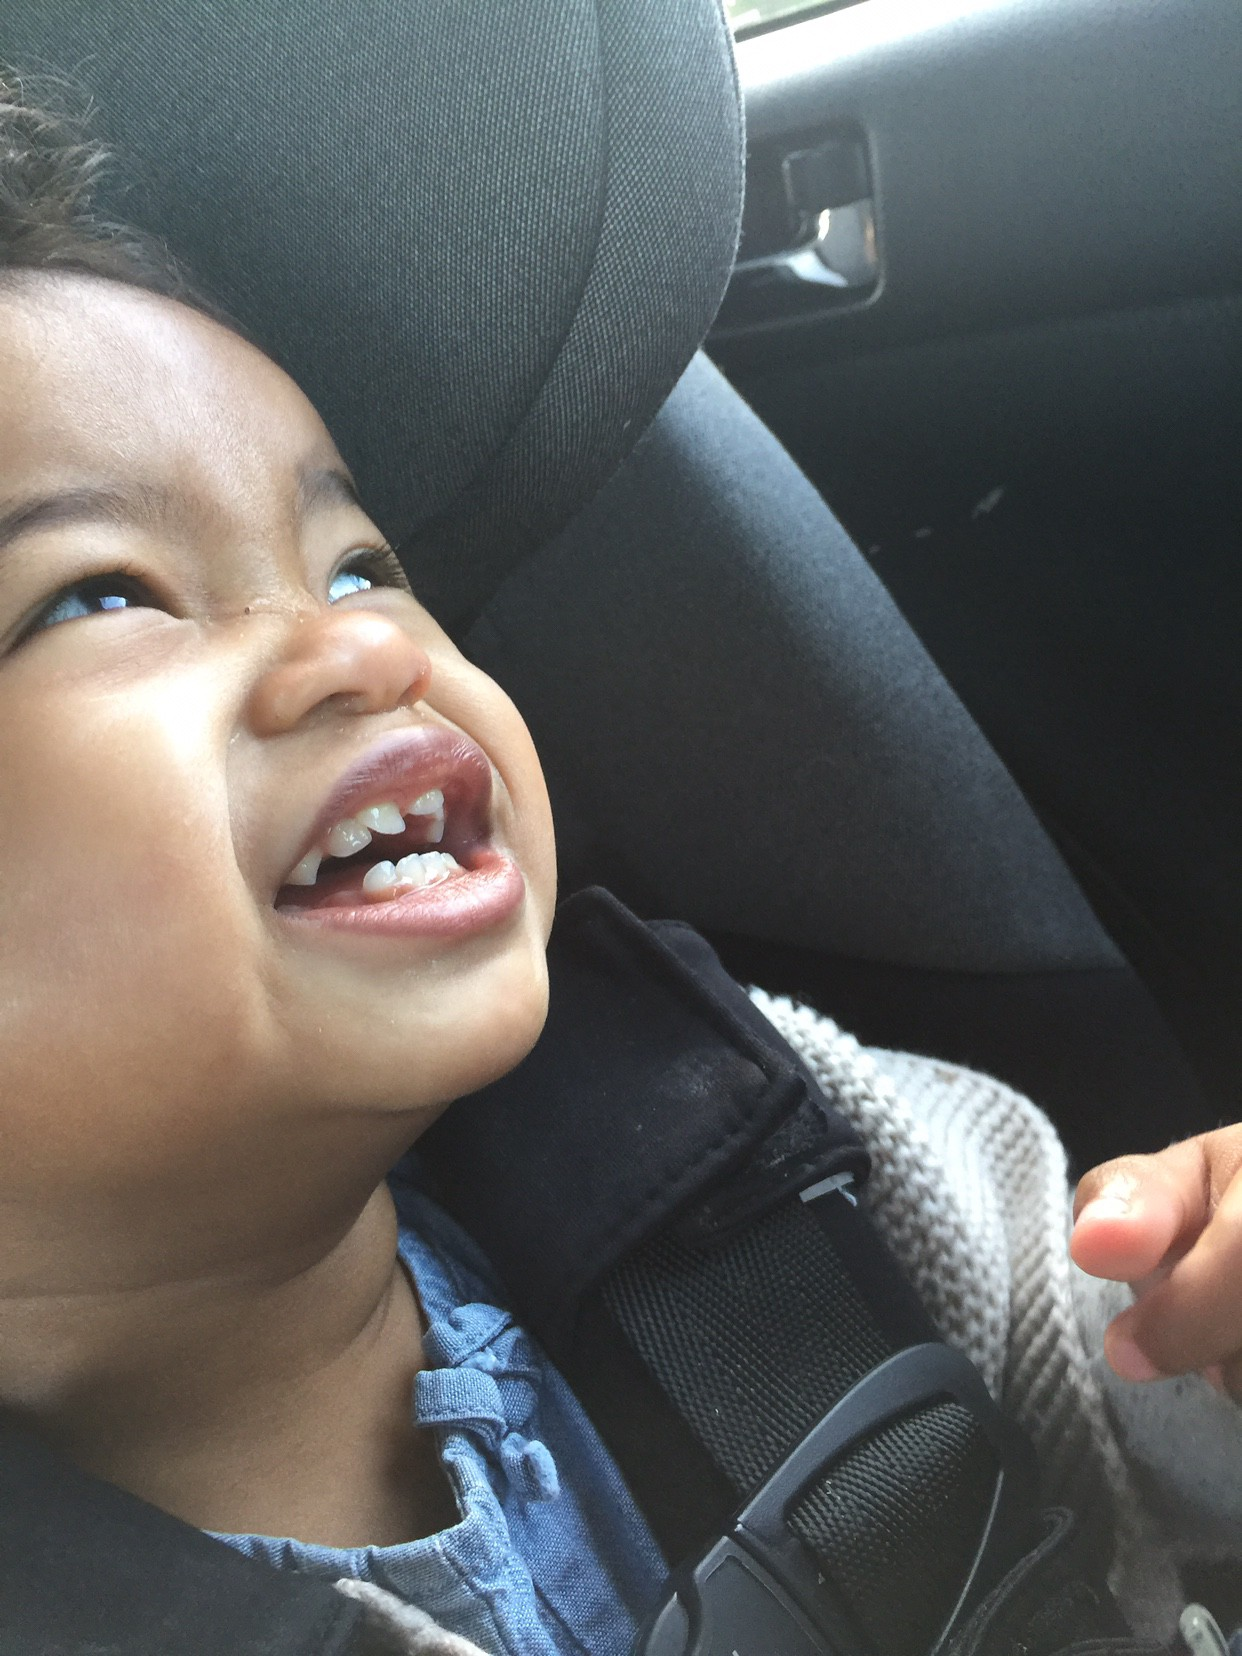 Toothy grins at 17 months